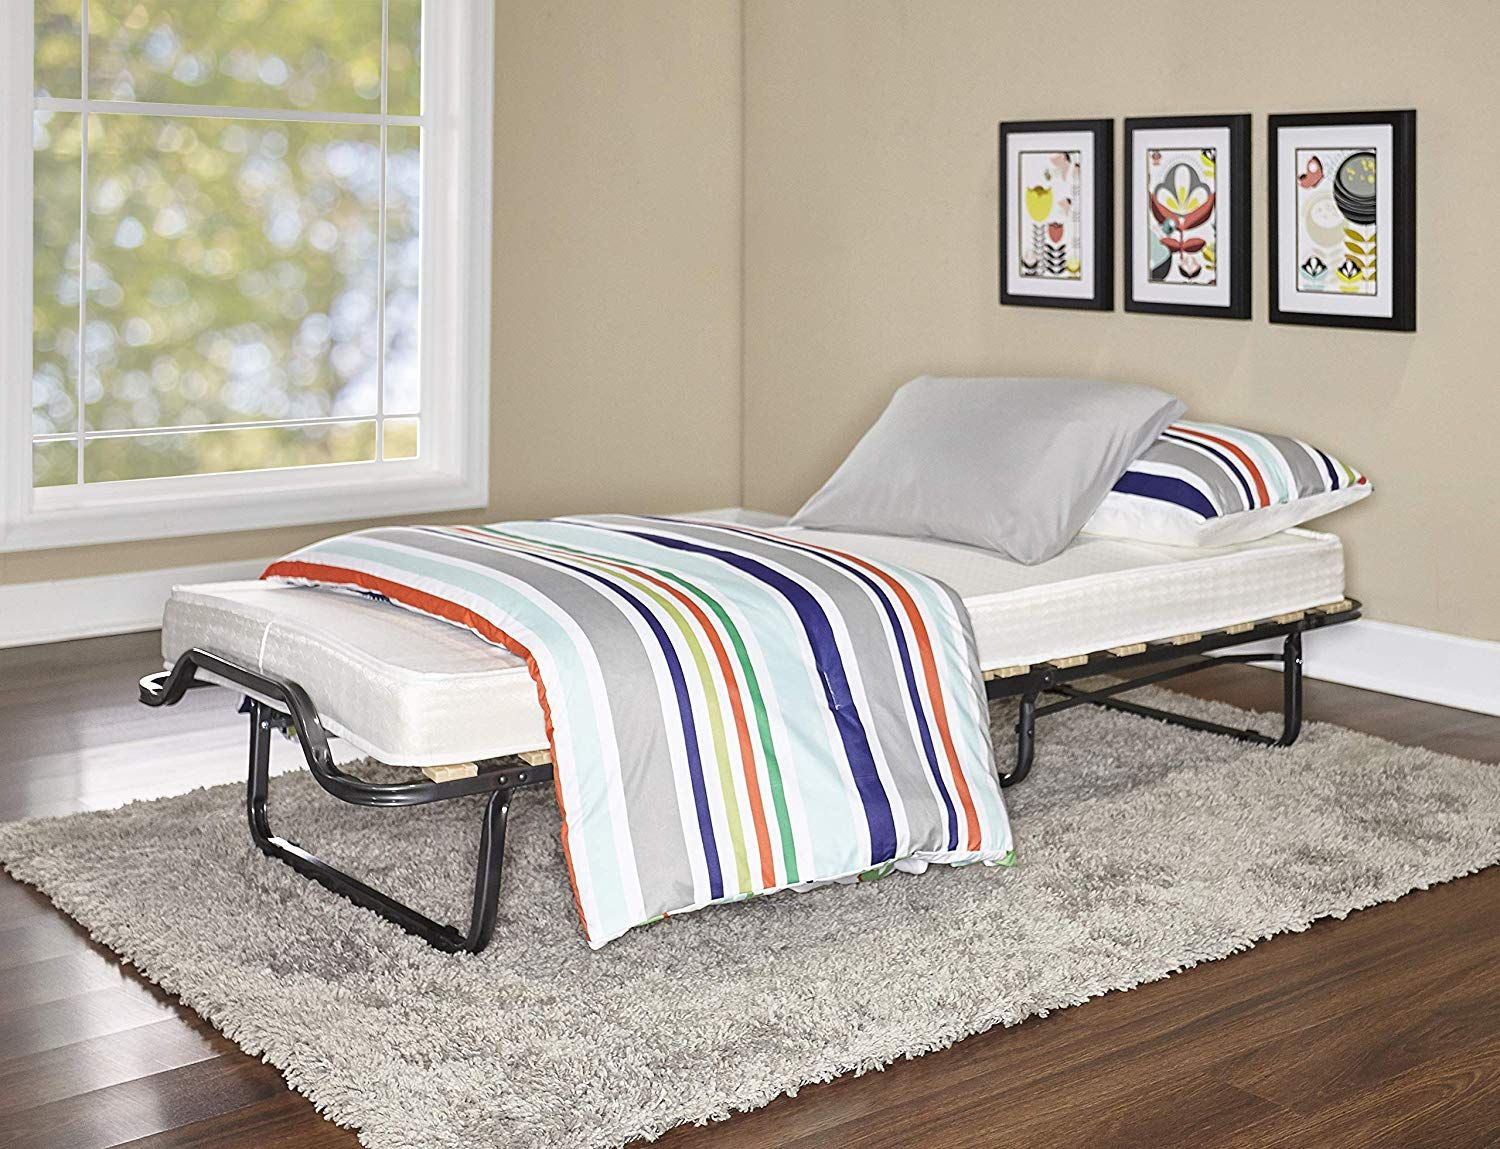 - Item Includes The Steel Frame And Mattress. Finish: Smooth